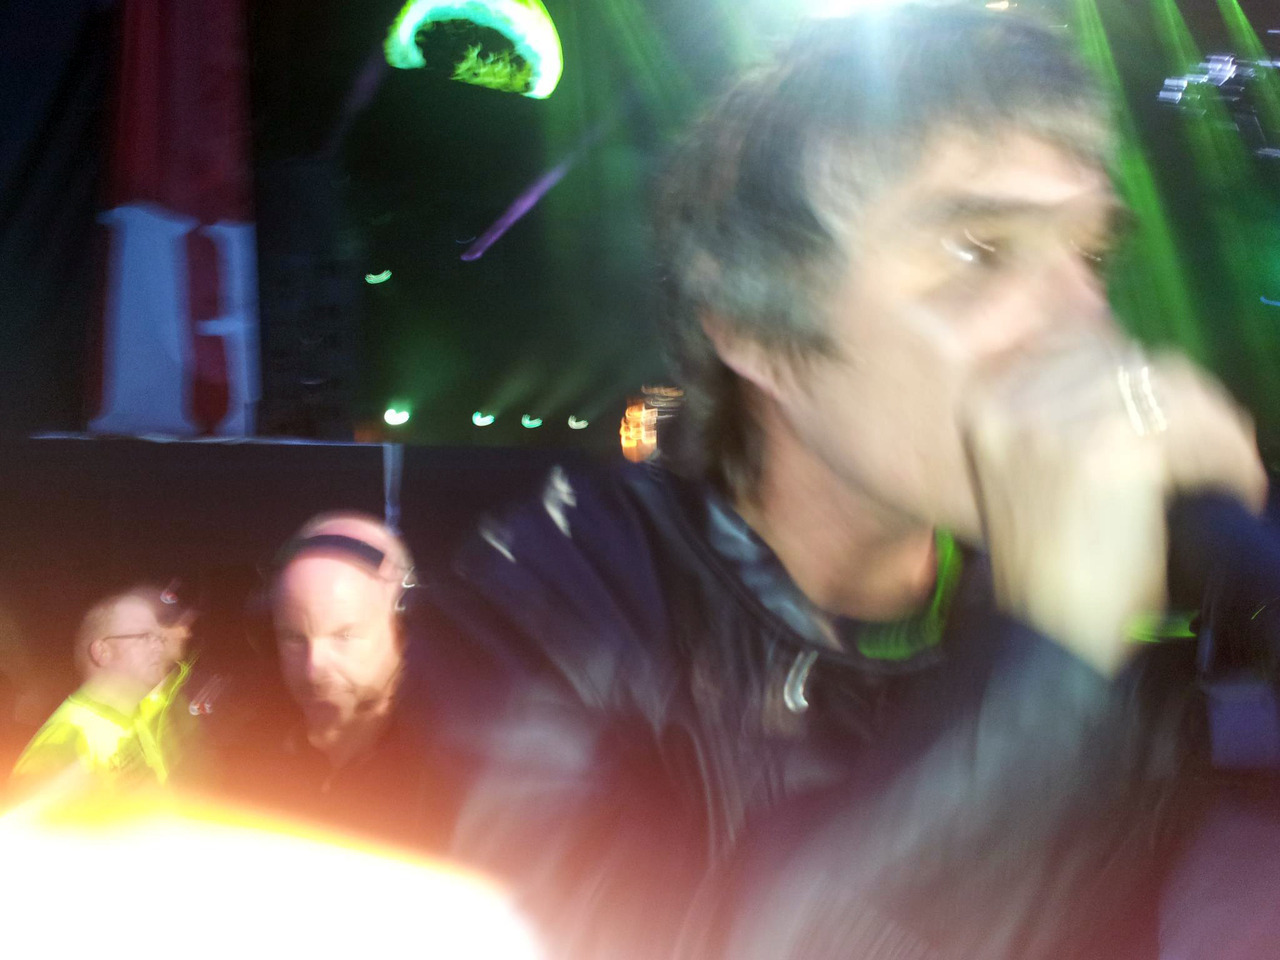 Ian Brown shaking my son's hand. The whole day seems like a bizarrely surreal intangible dream now. Mad.